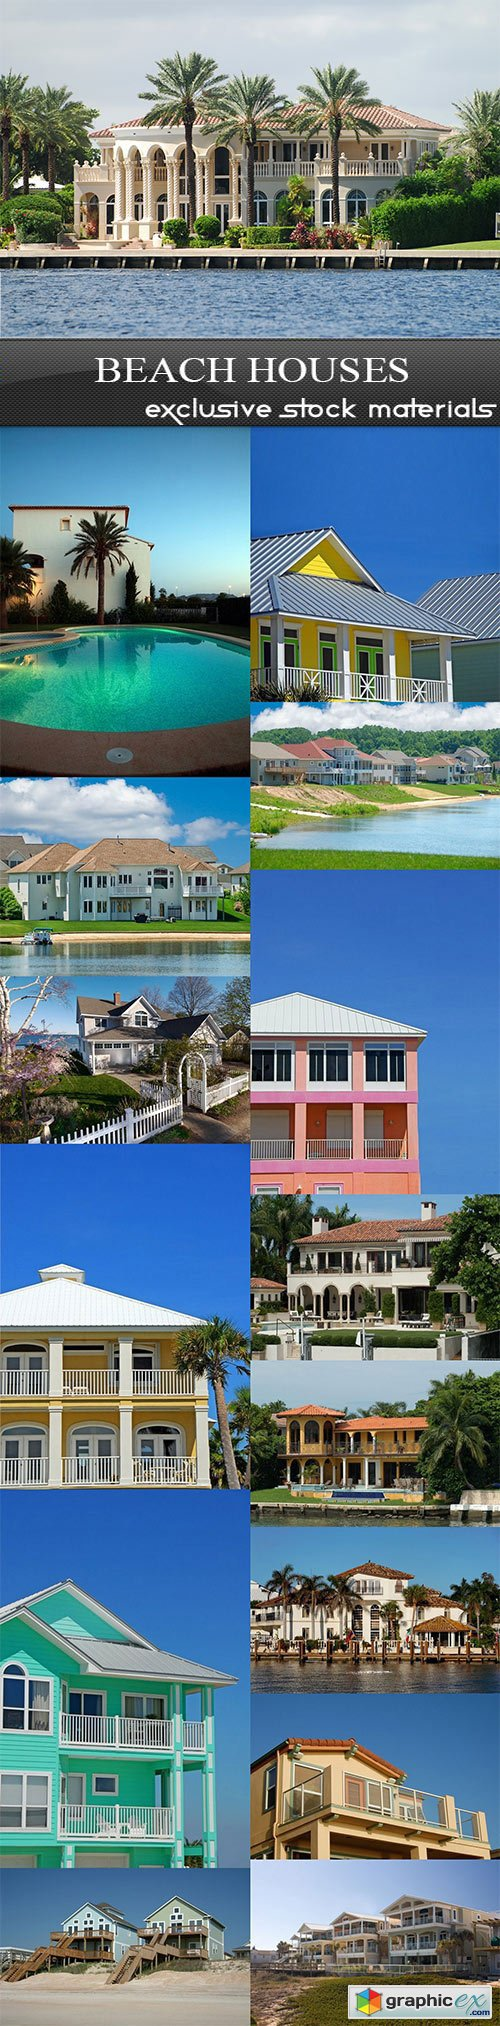 Beach Houses - 15 UHQ JPEG